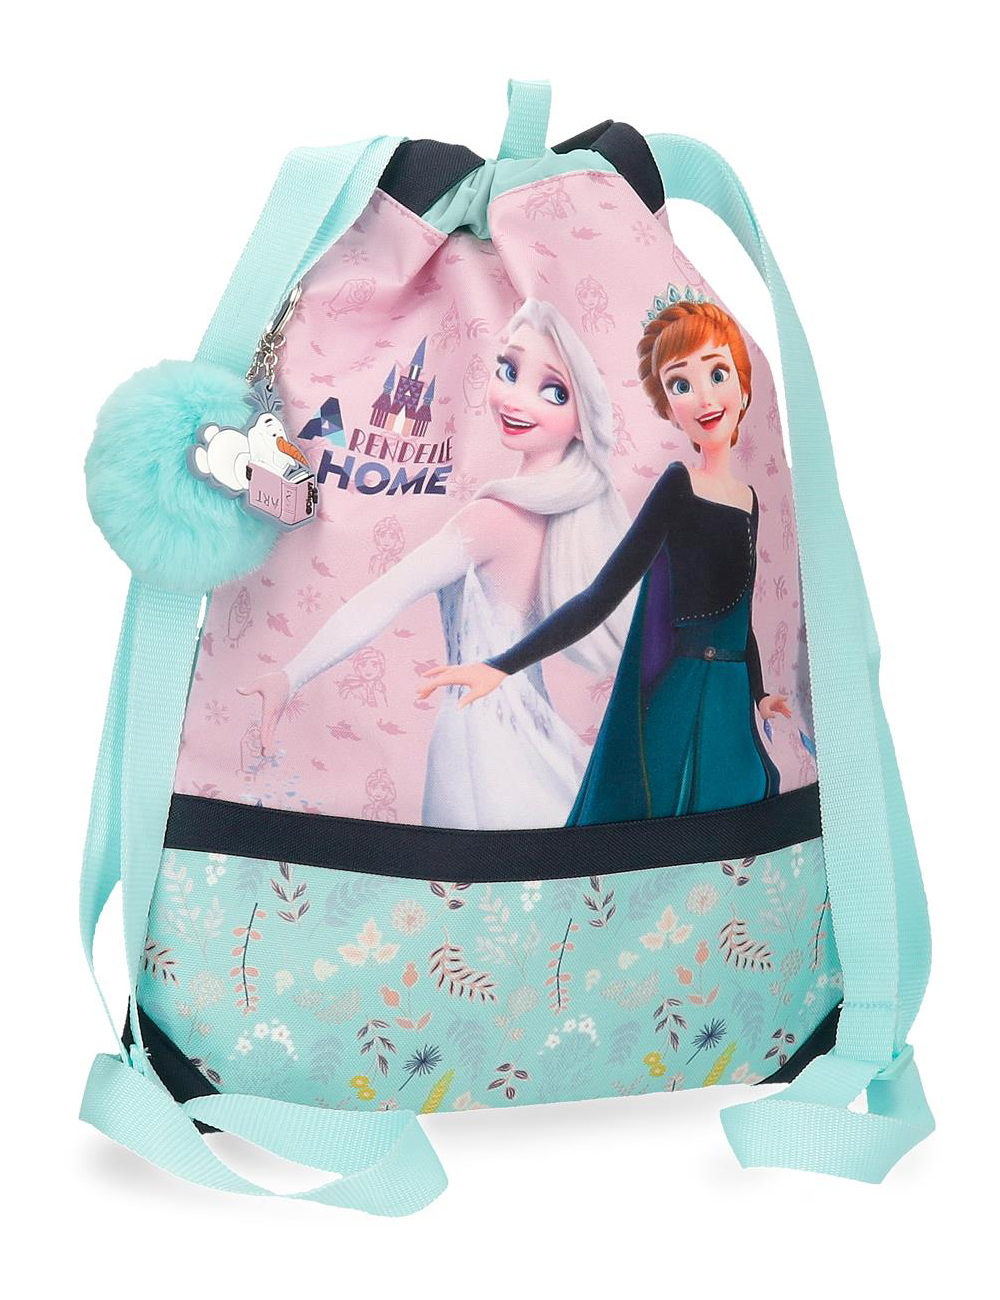 2243821 Gym Sac Frozen Arendelle Is Home